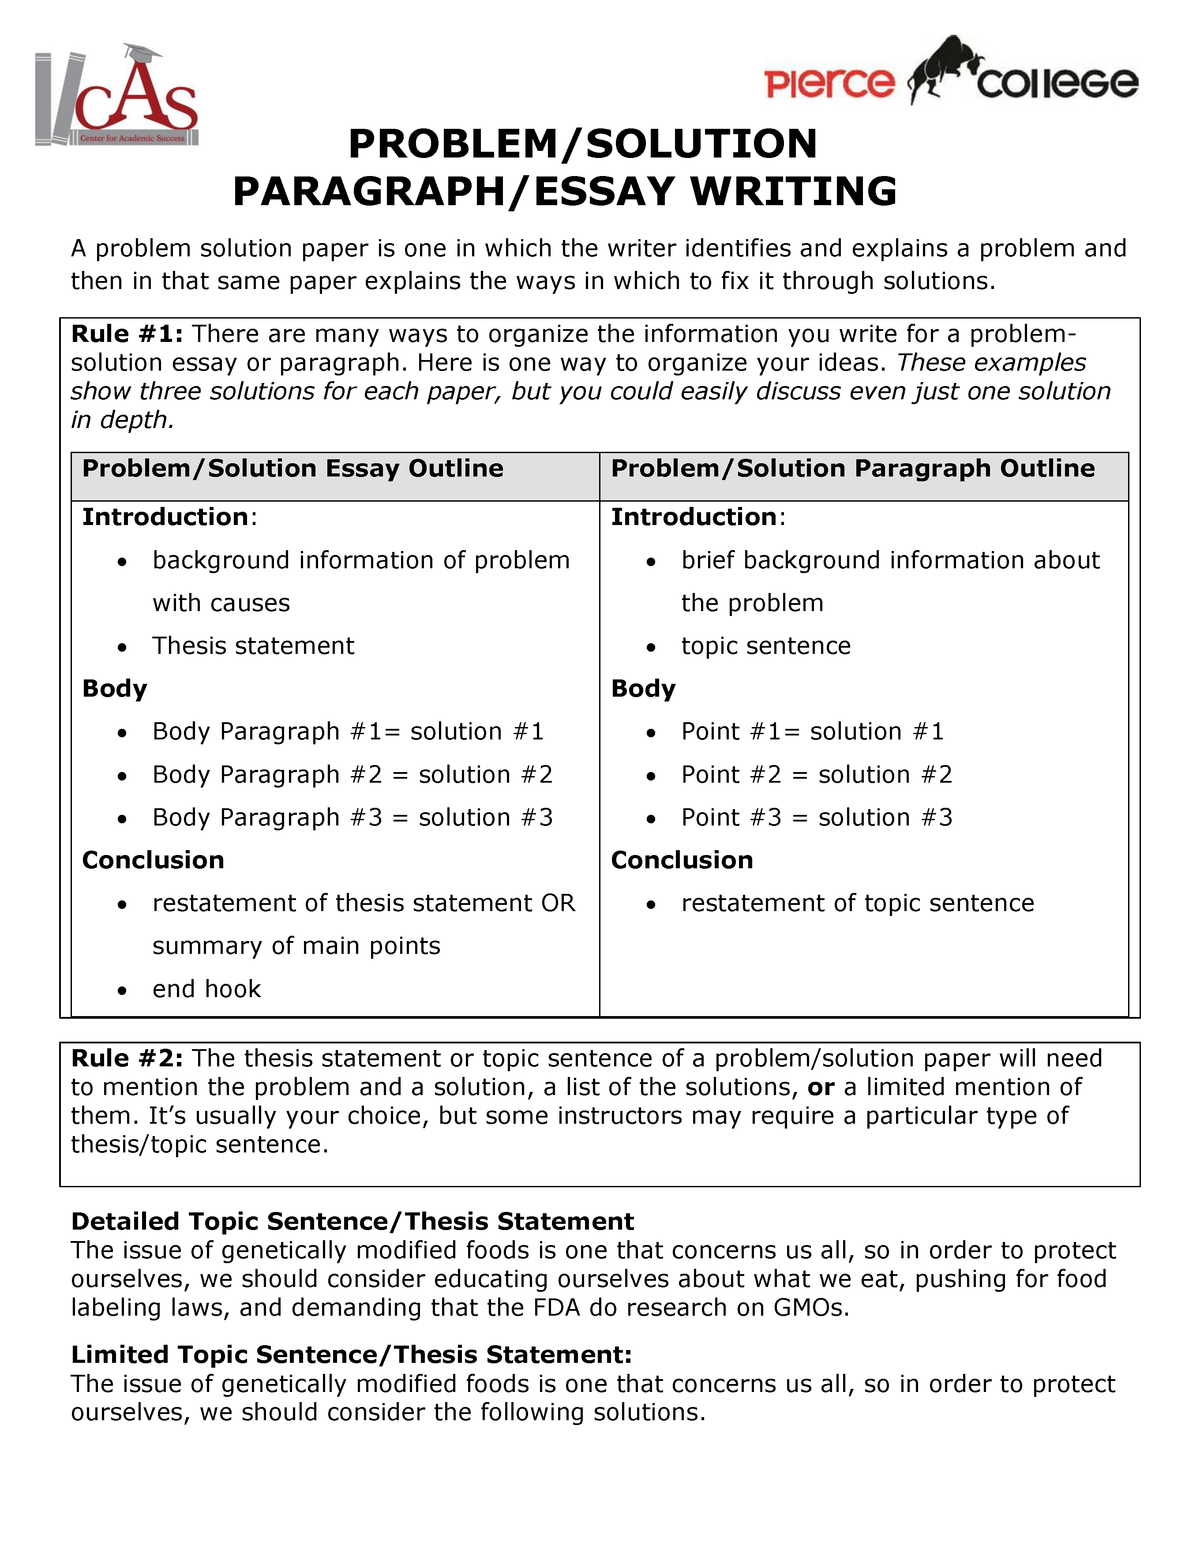 Persuasive Essays Examples For High School  Essay On Business Management also Argumentative Essay Sample High School Problem Solution Paragraph Essay Writing  Eng  English  Business Essay Example